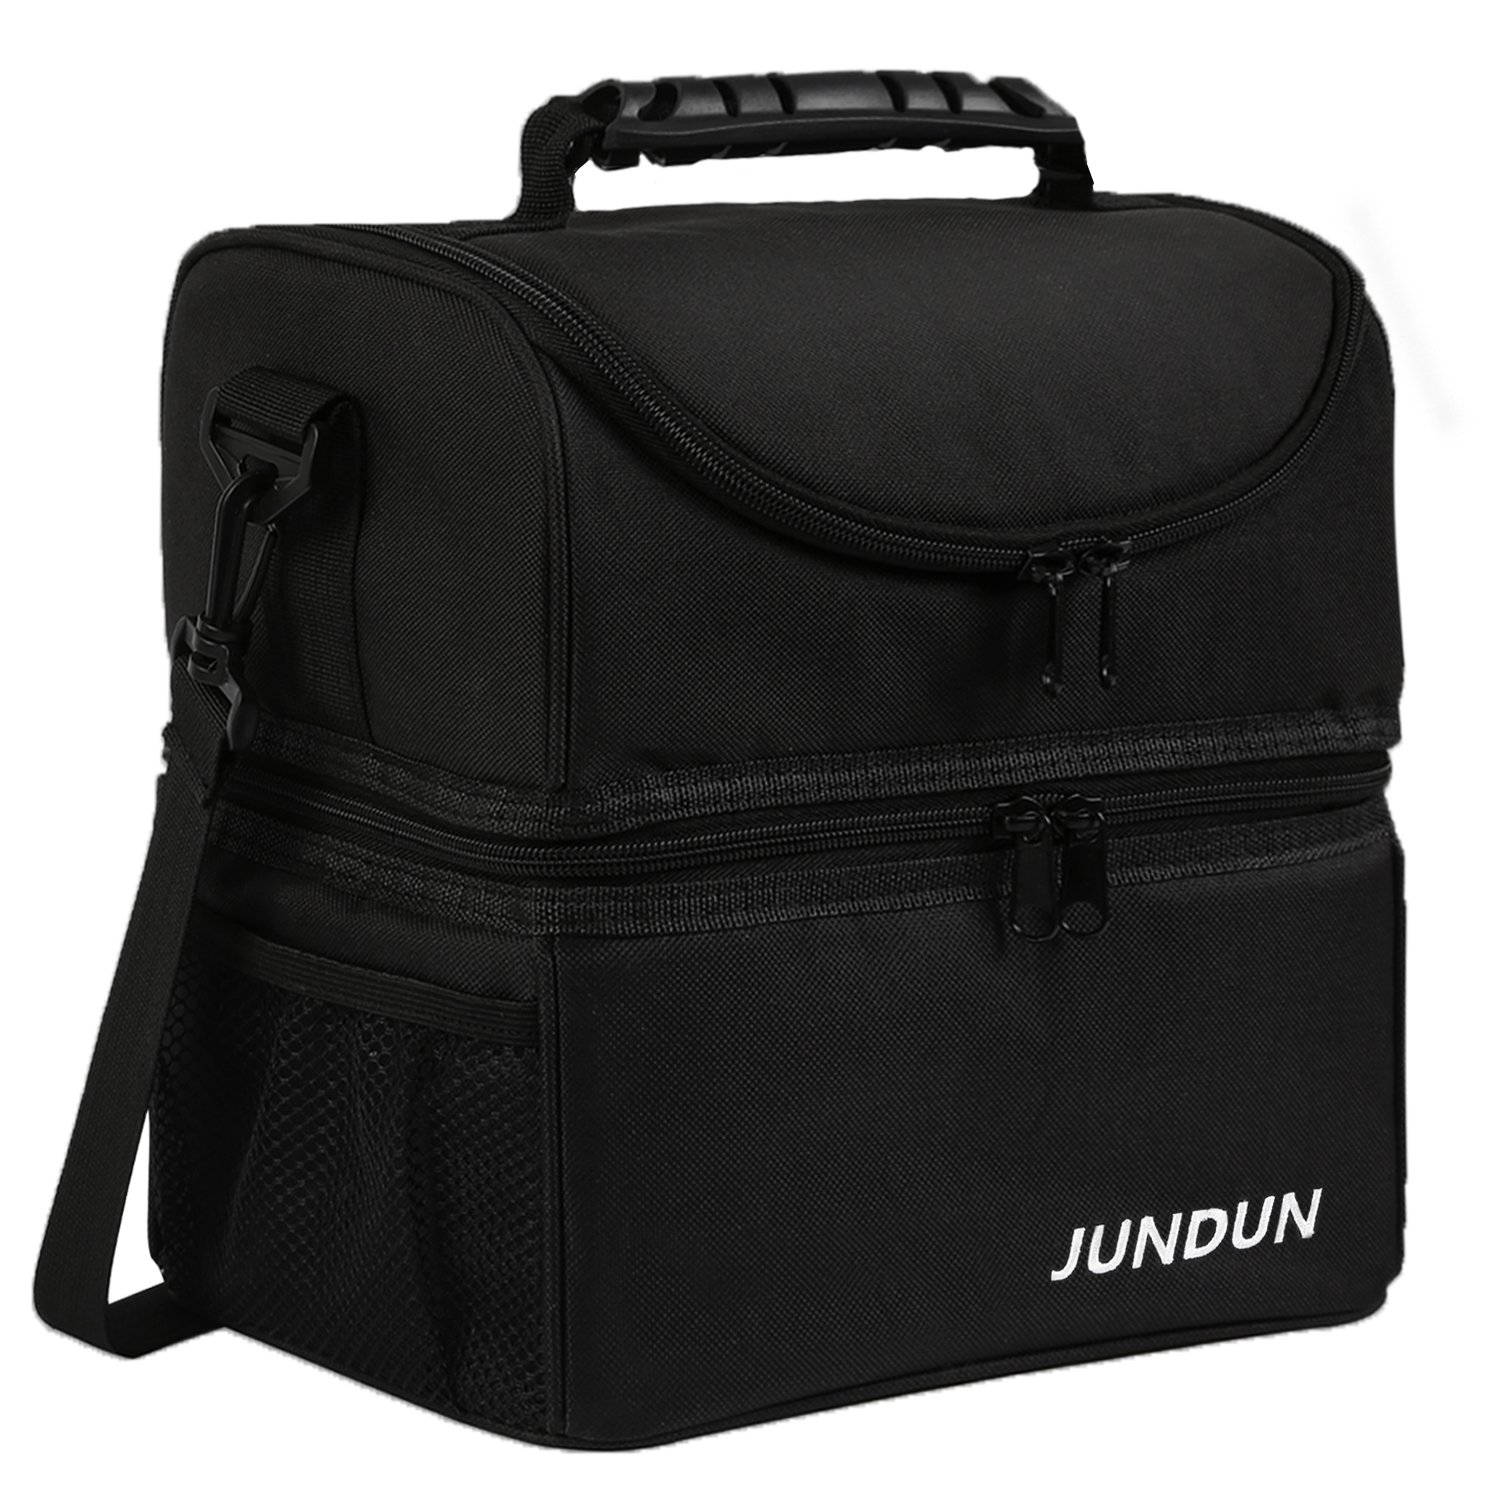 JUNDUN Lunch Bag Double Insulated Cooler Tote Lunch Box with Shoulder Strap for Men &Women (Purple)